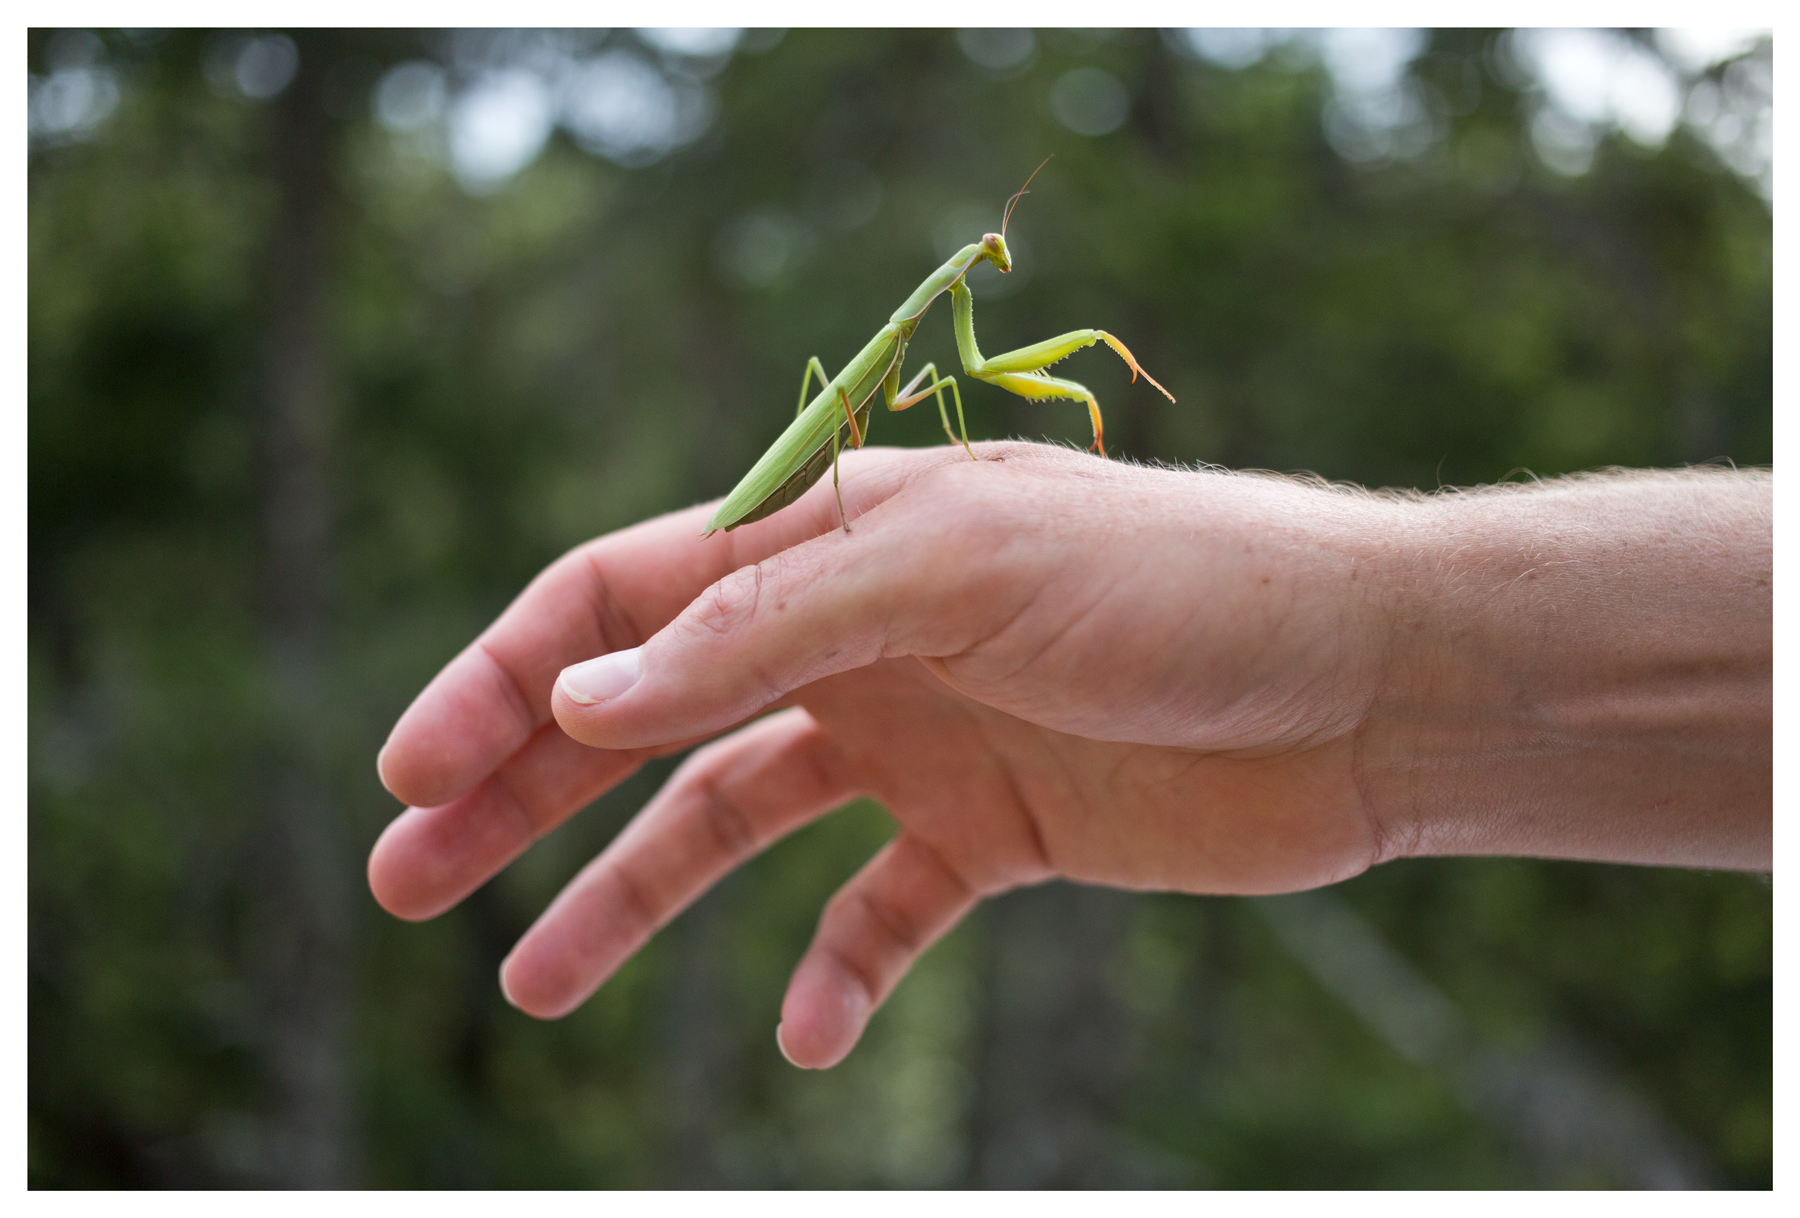 Praying mantis on Nate; Mount Tamalpais; Marin County, CA; July 2014